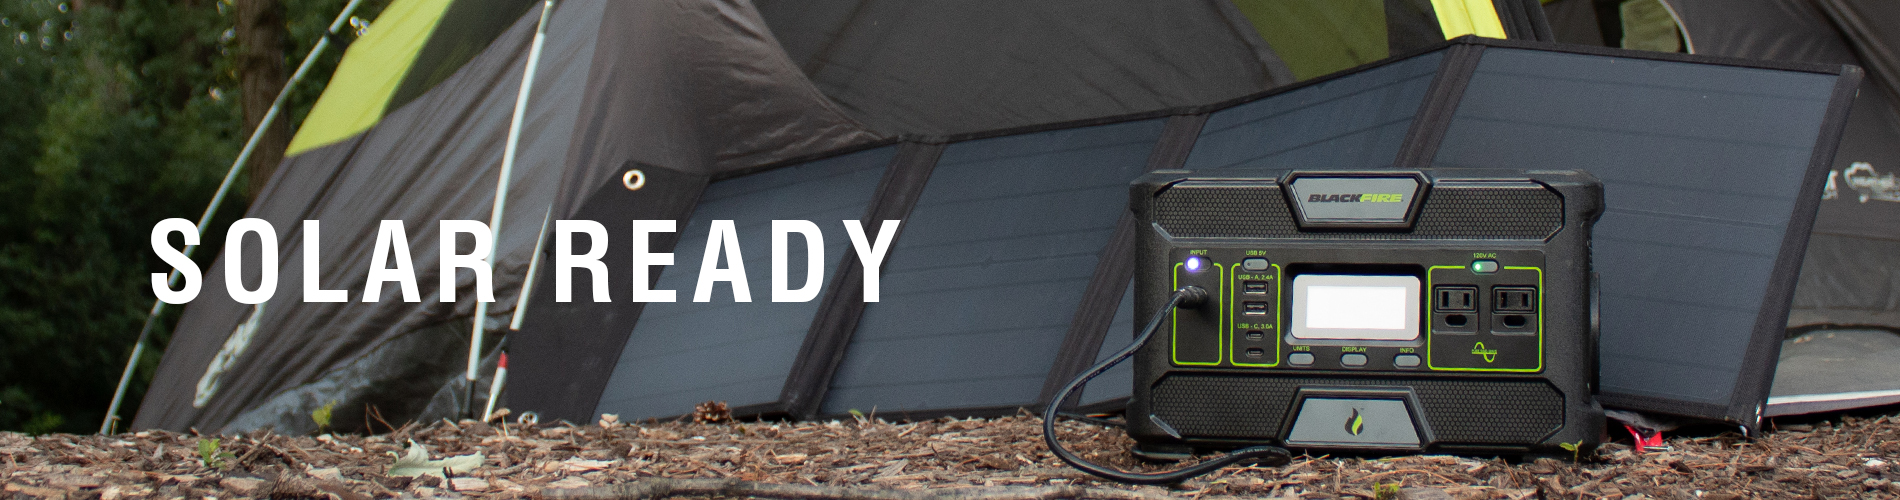 Solar Ready Portable Power